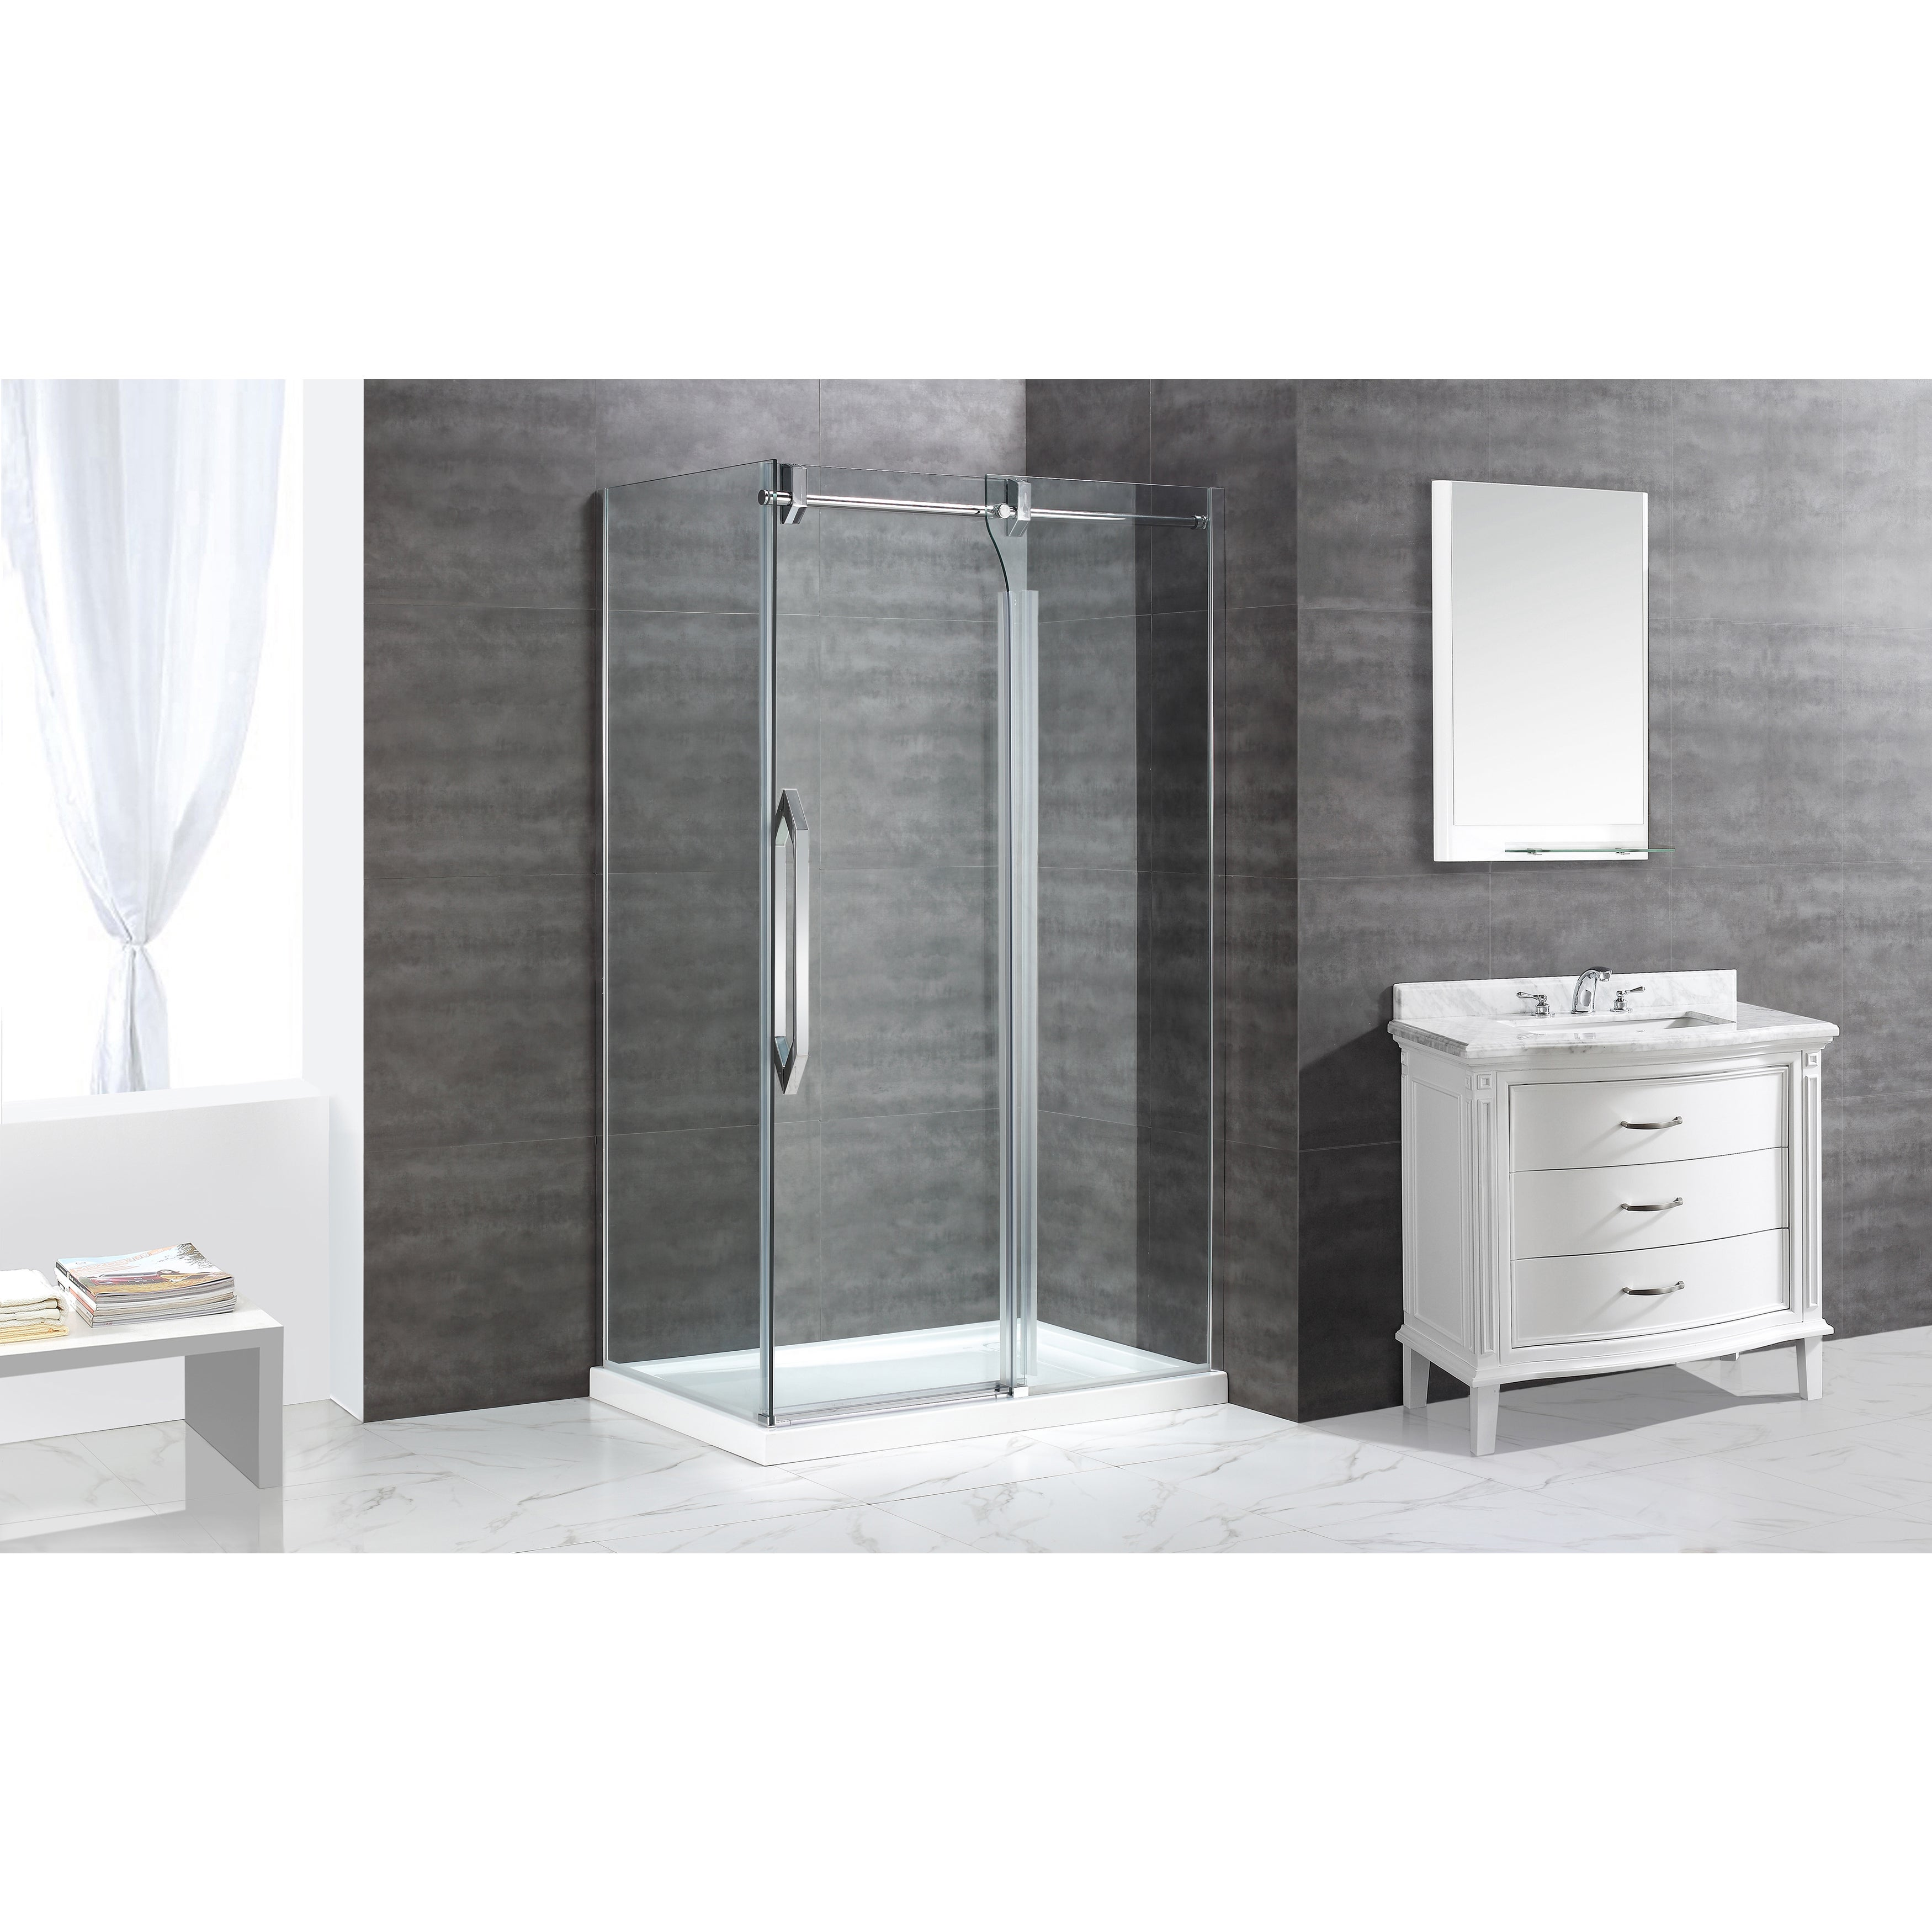 Shop OVE Decors Antigua 48-inch Glass Shower Kit - Free Shipping ...